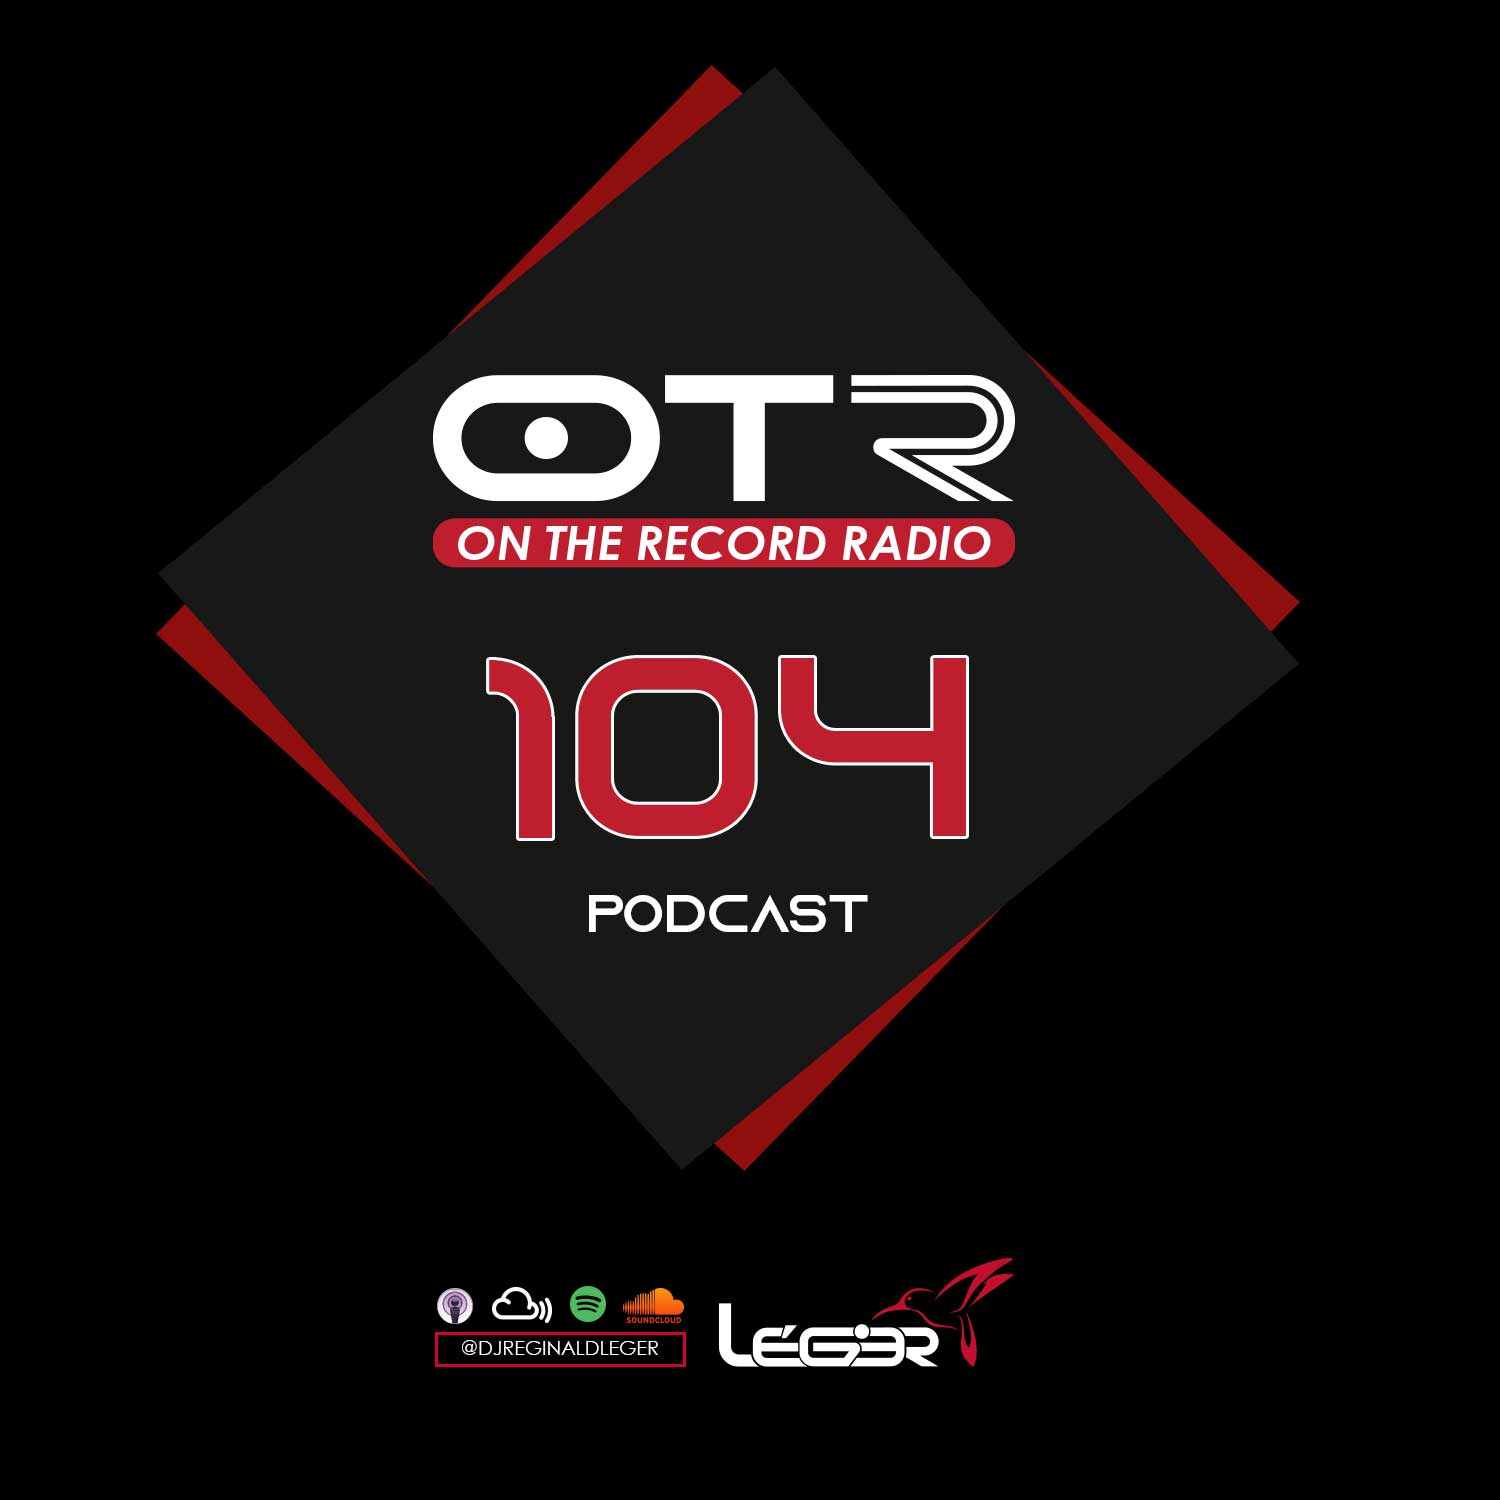 On The Record | OTR 104